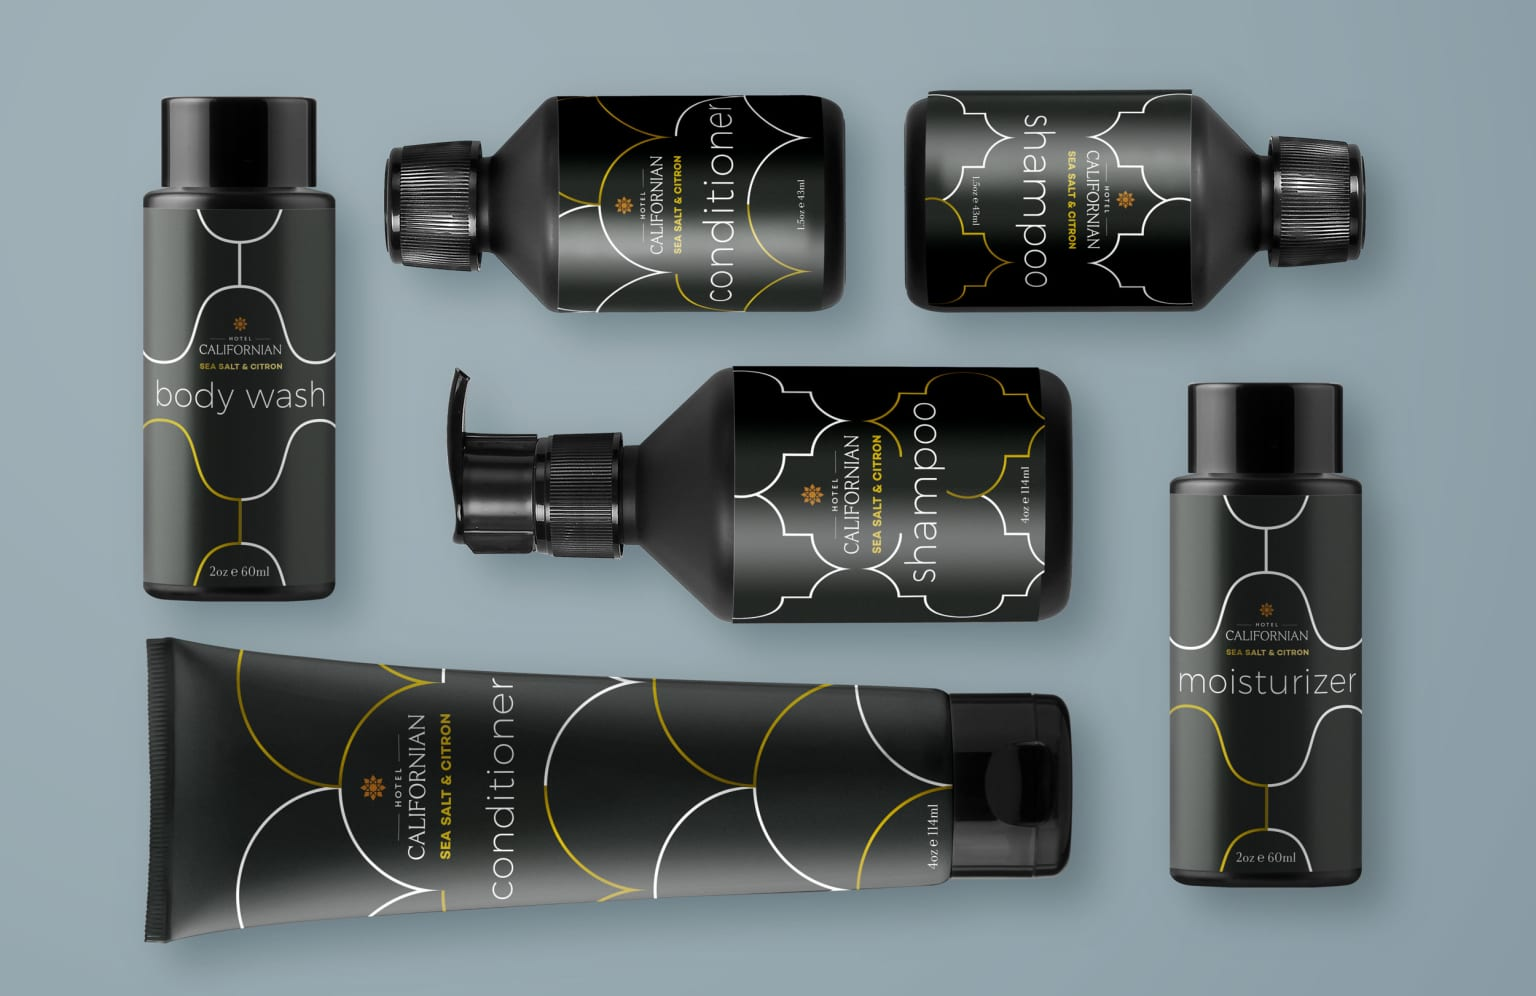 Hotel Californian | PACKAGE DESIGN